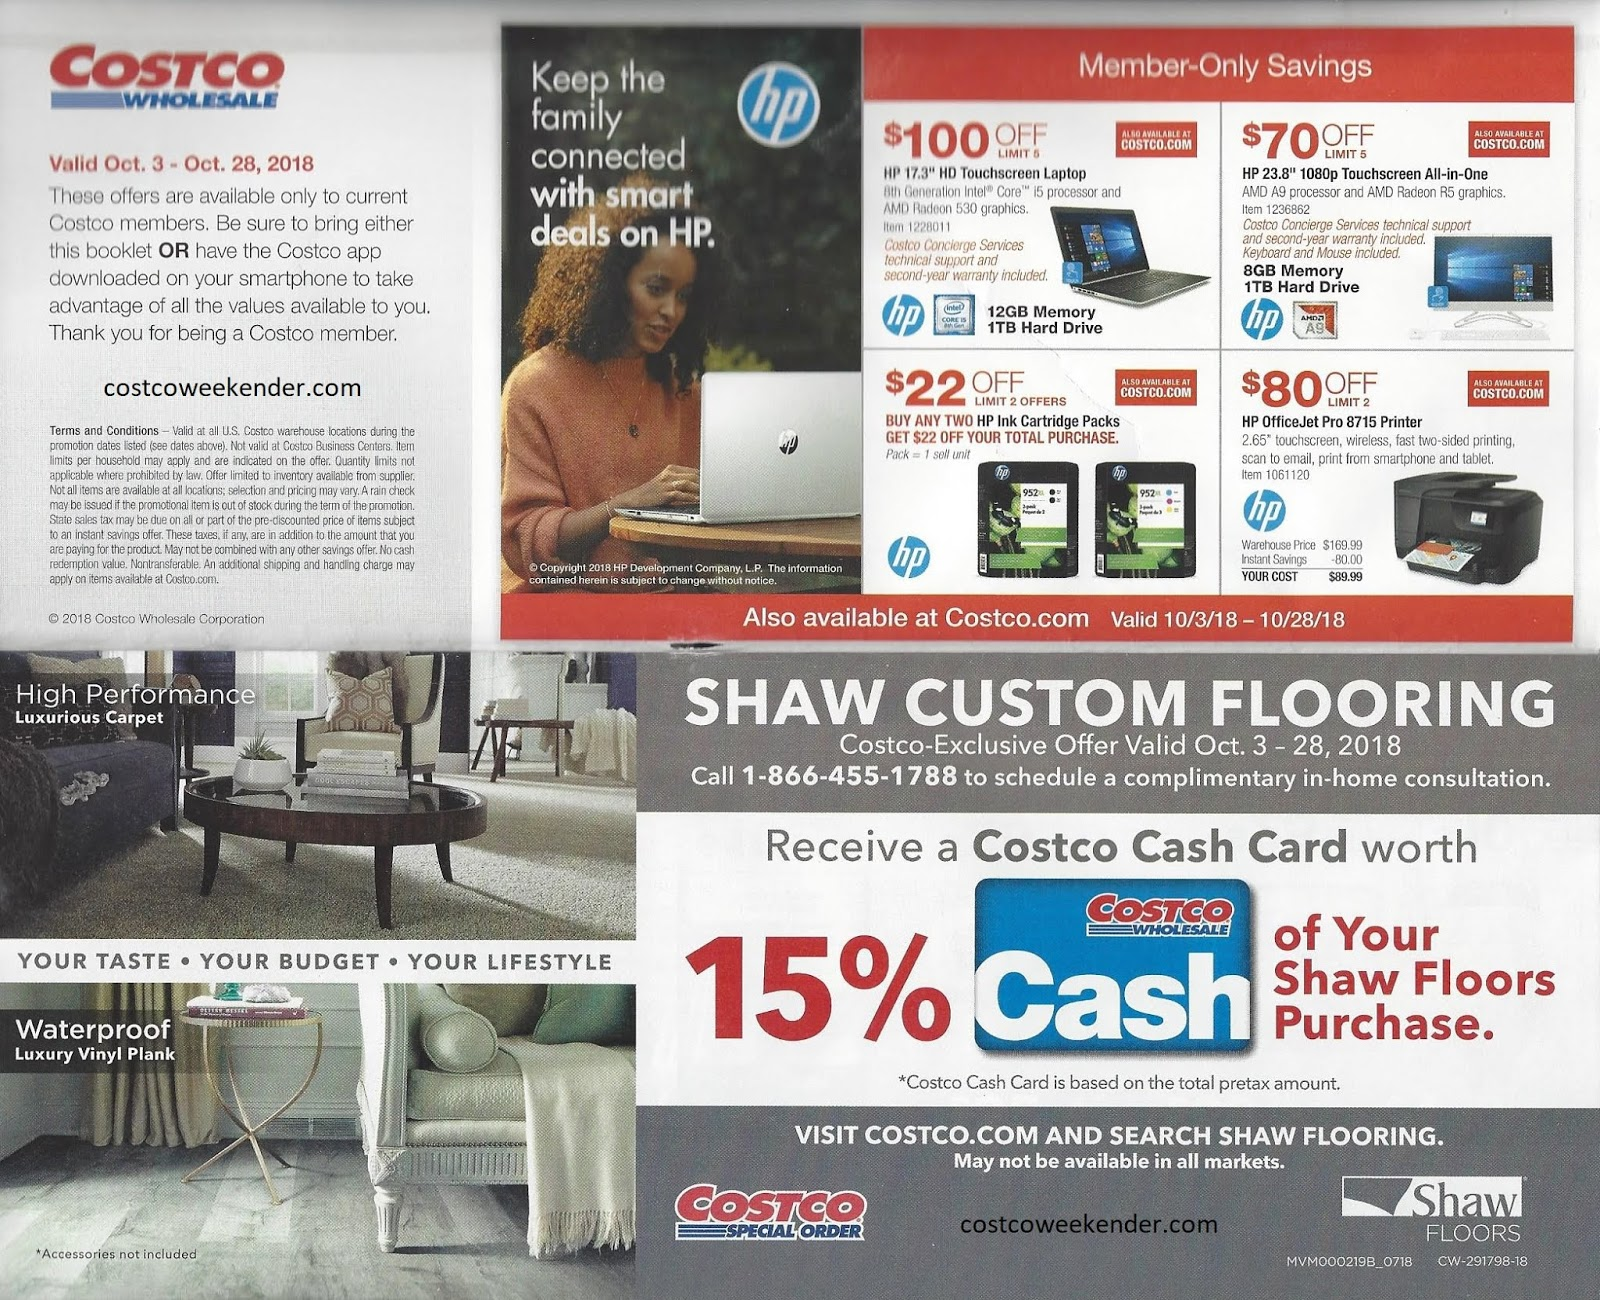 Costco October 2018 Coupon Book | Costco Weekender